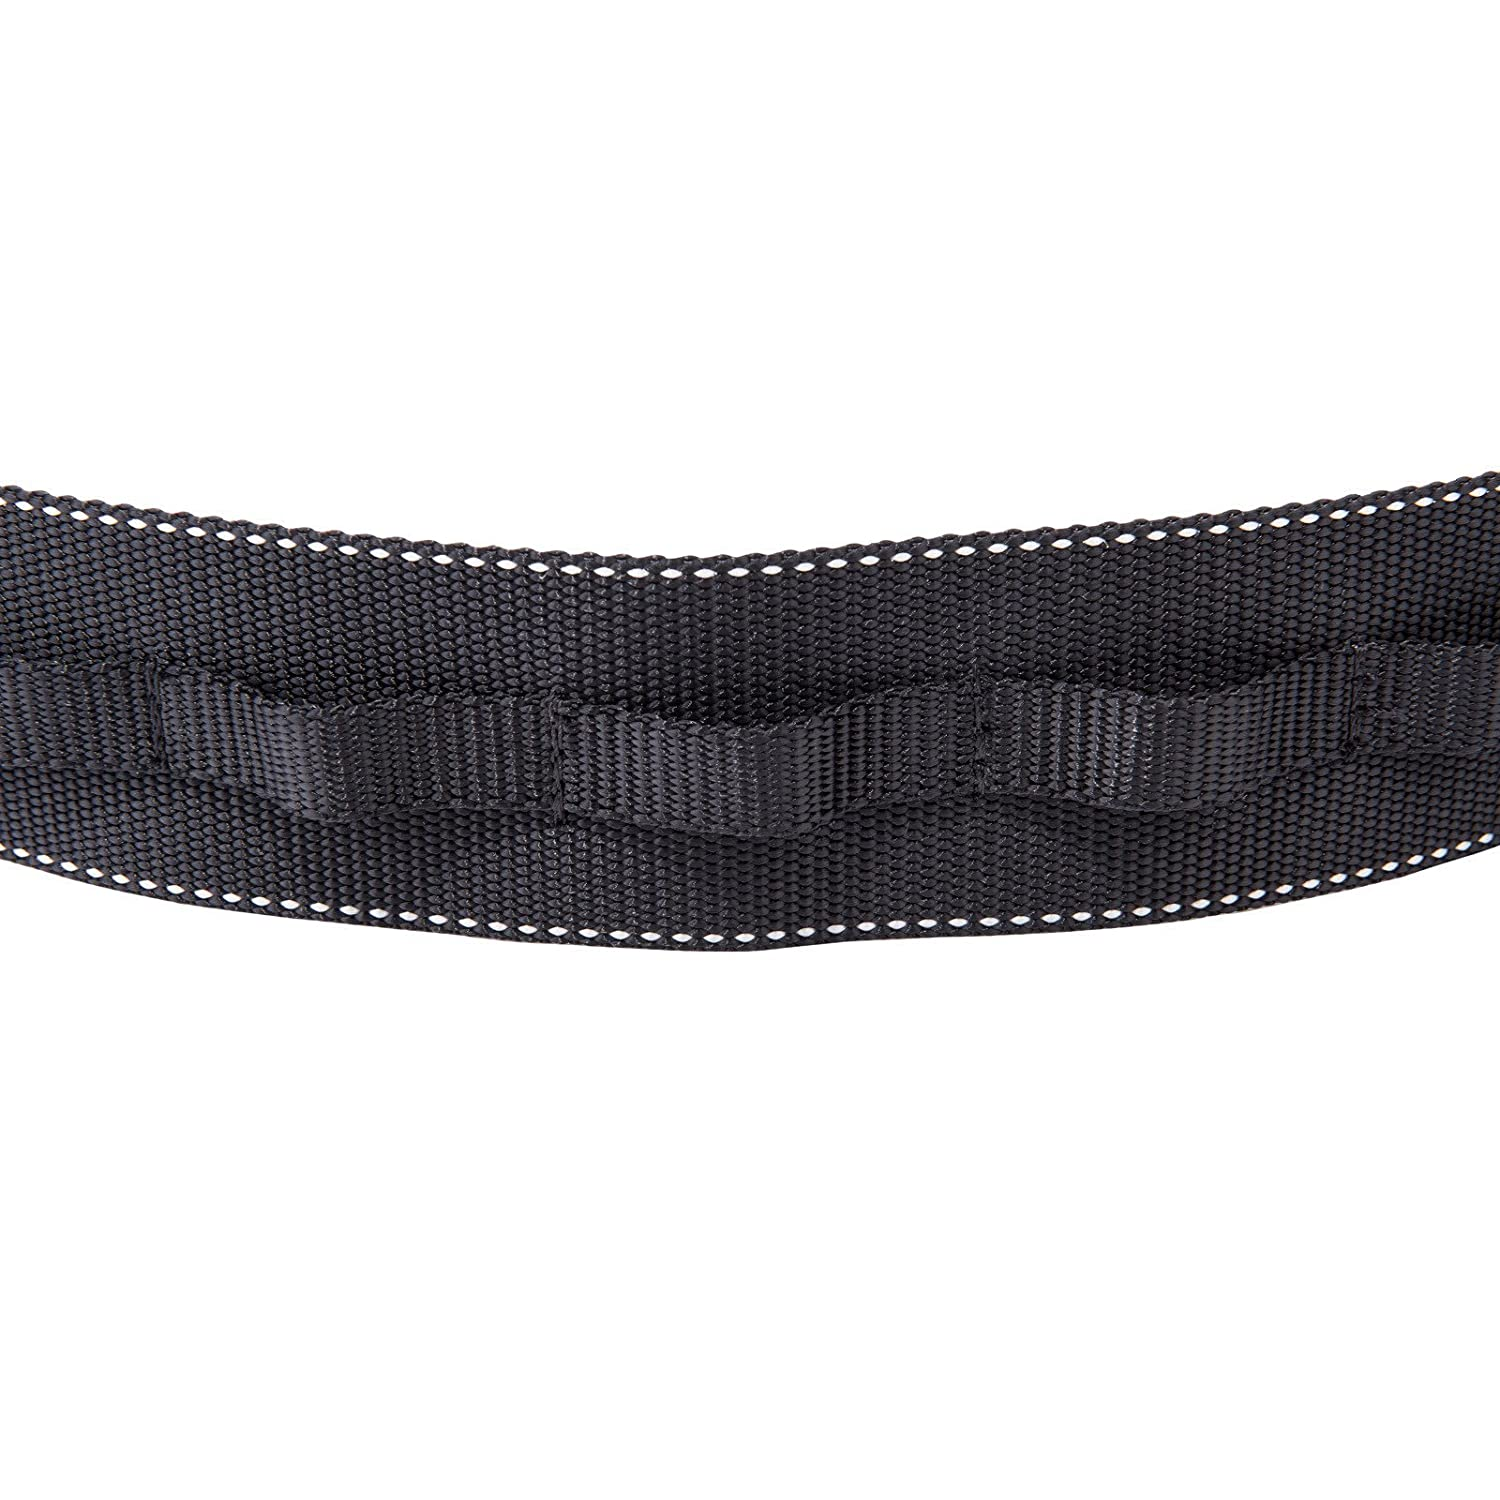 Large//X-Large//XX-Large, Black Think Tank Photo Thin Skin Belt V2.0